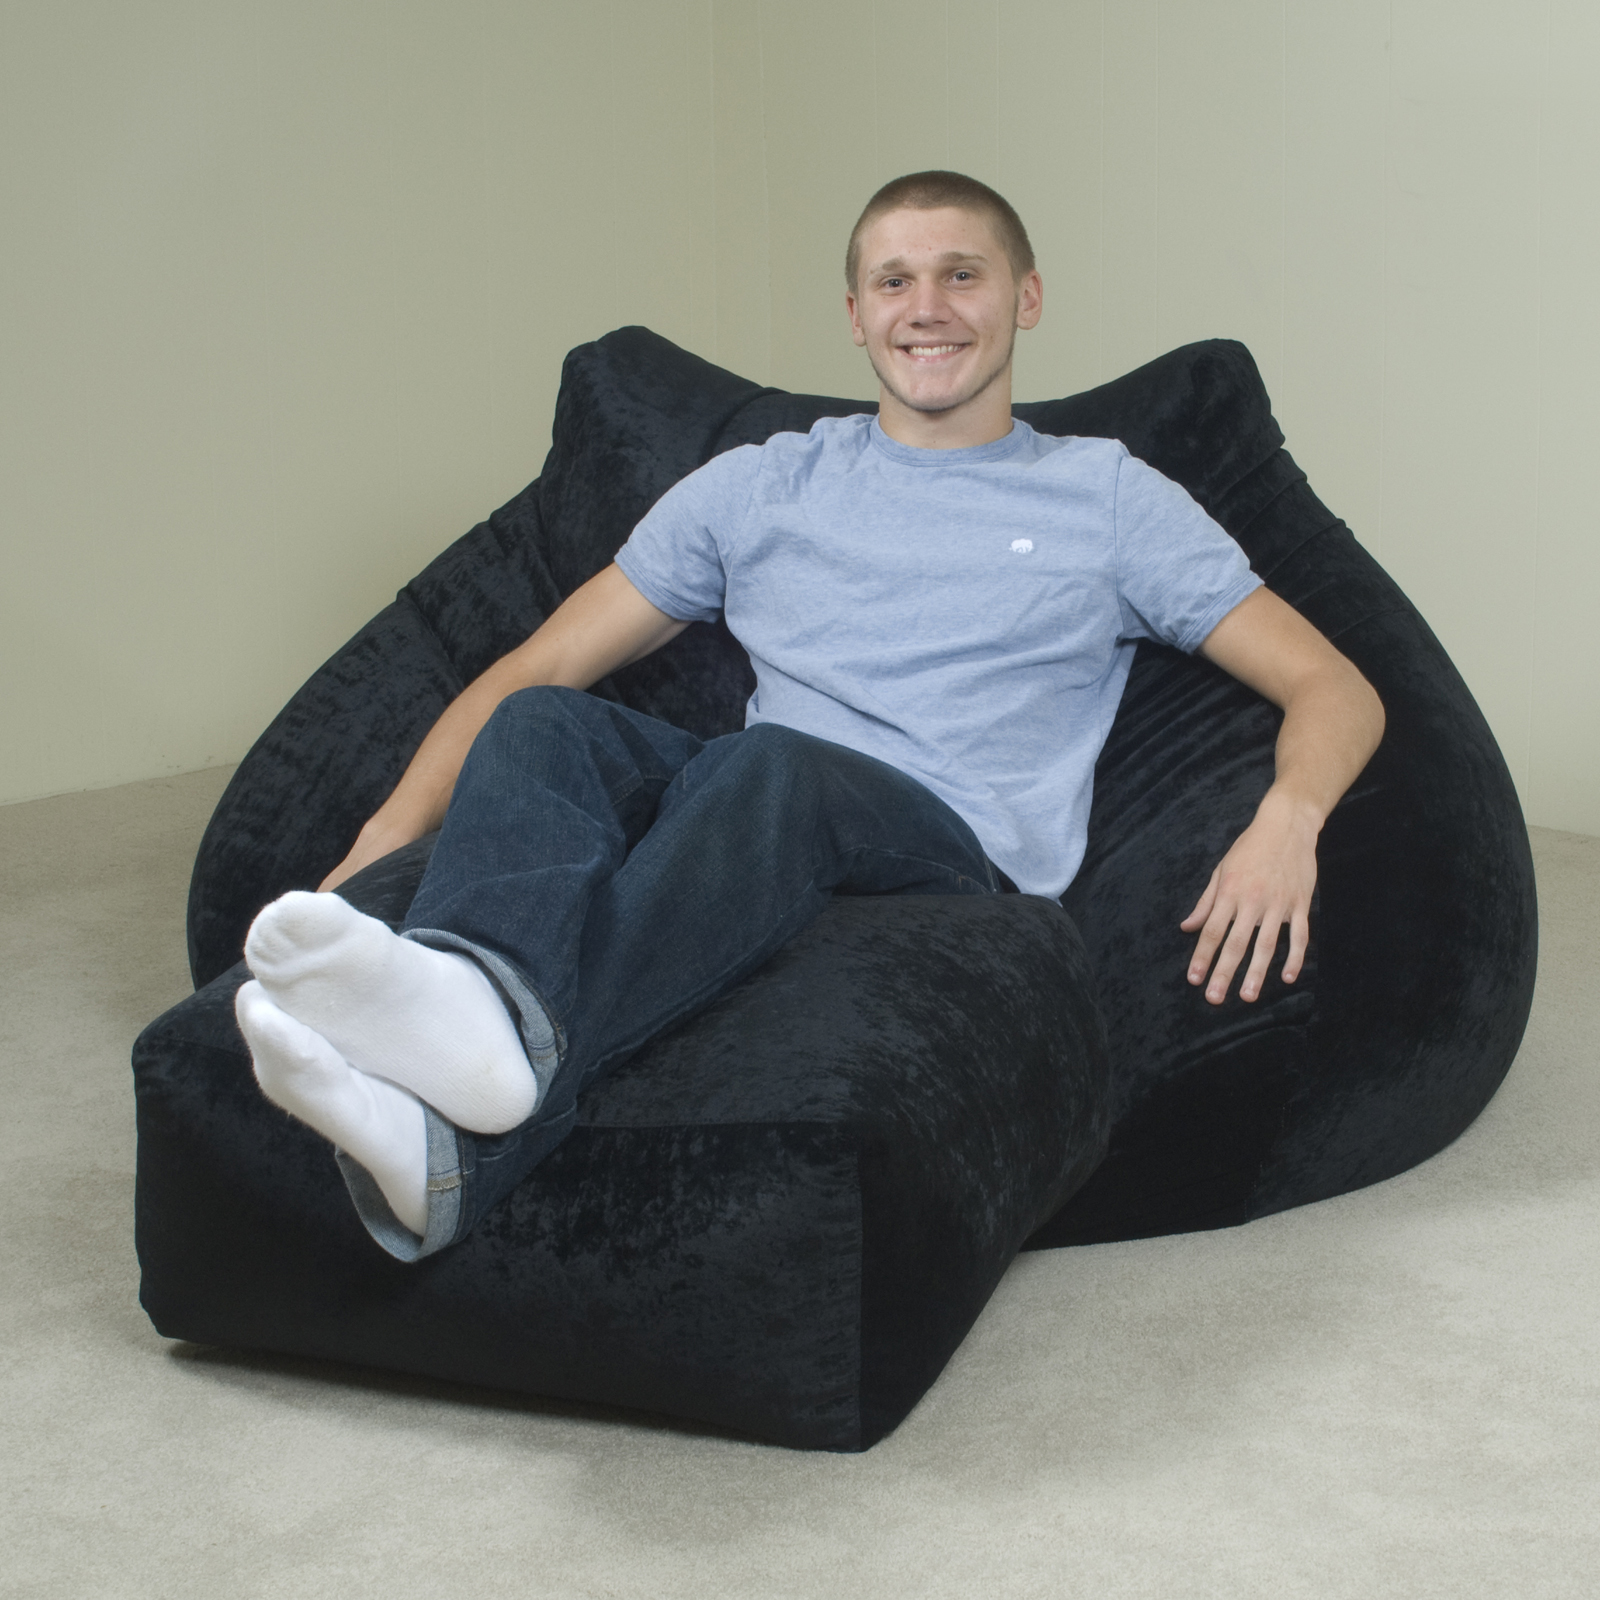 Beanbag Chair Best Bean Bag Chairs For Adults Ideas With Images